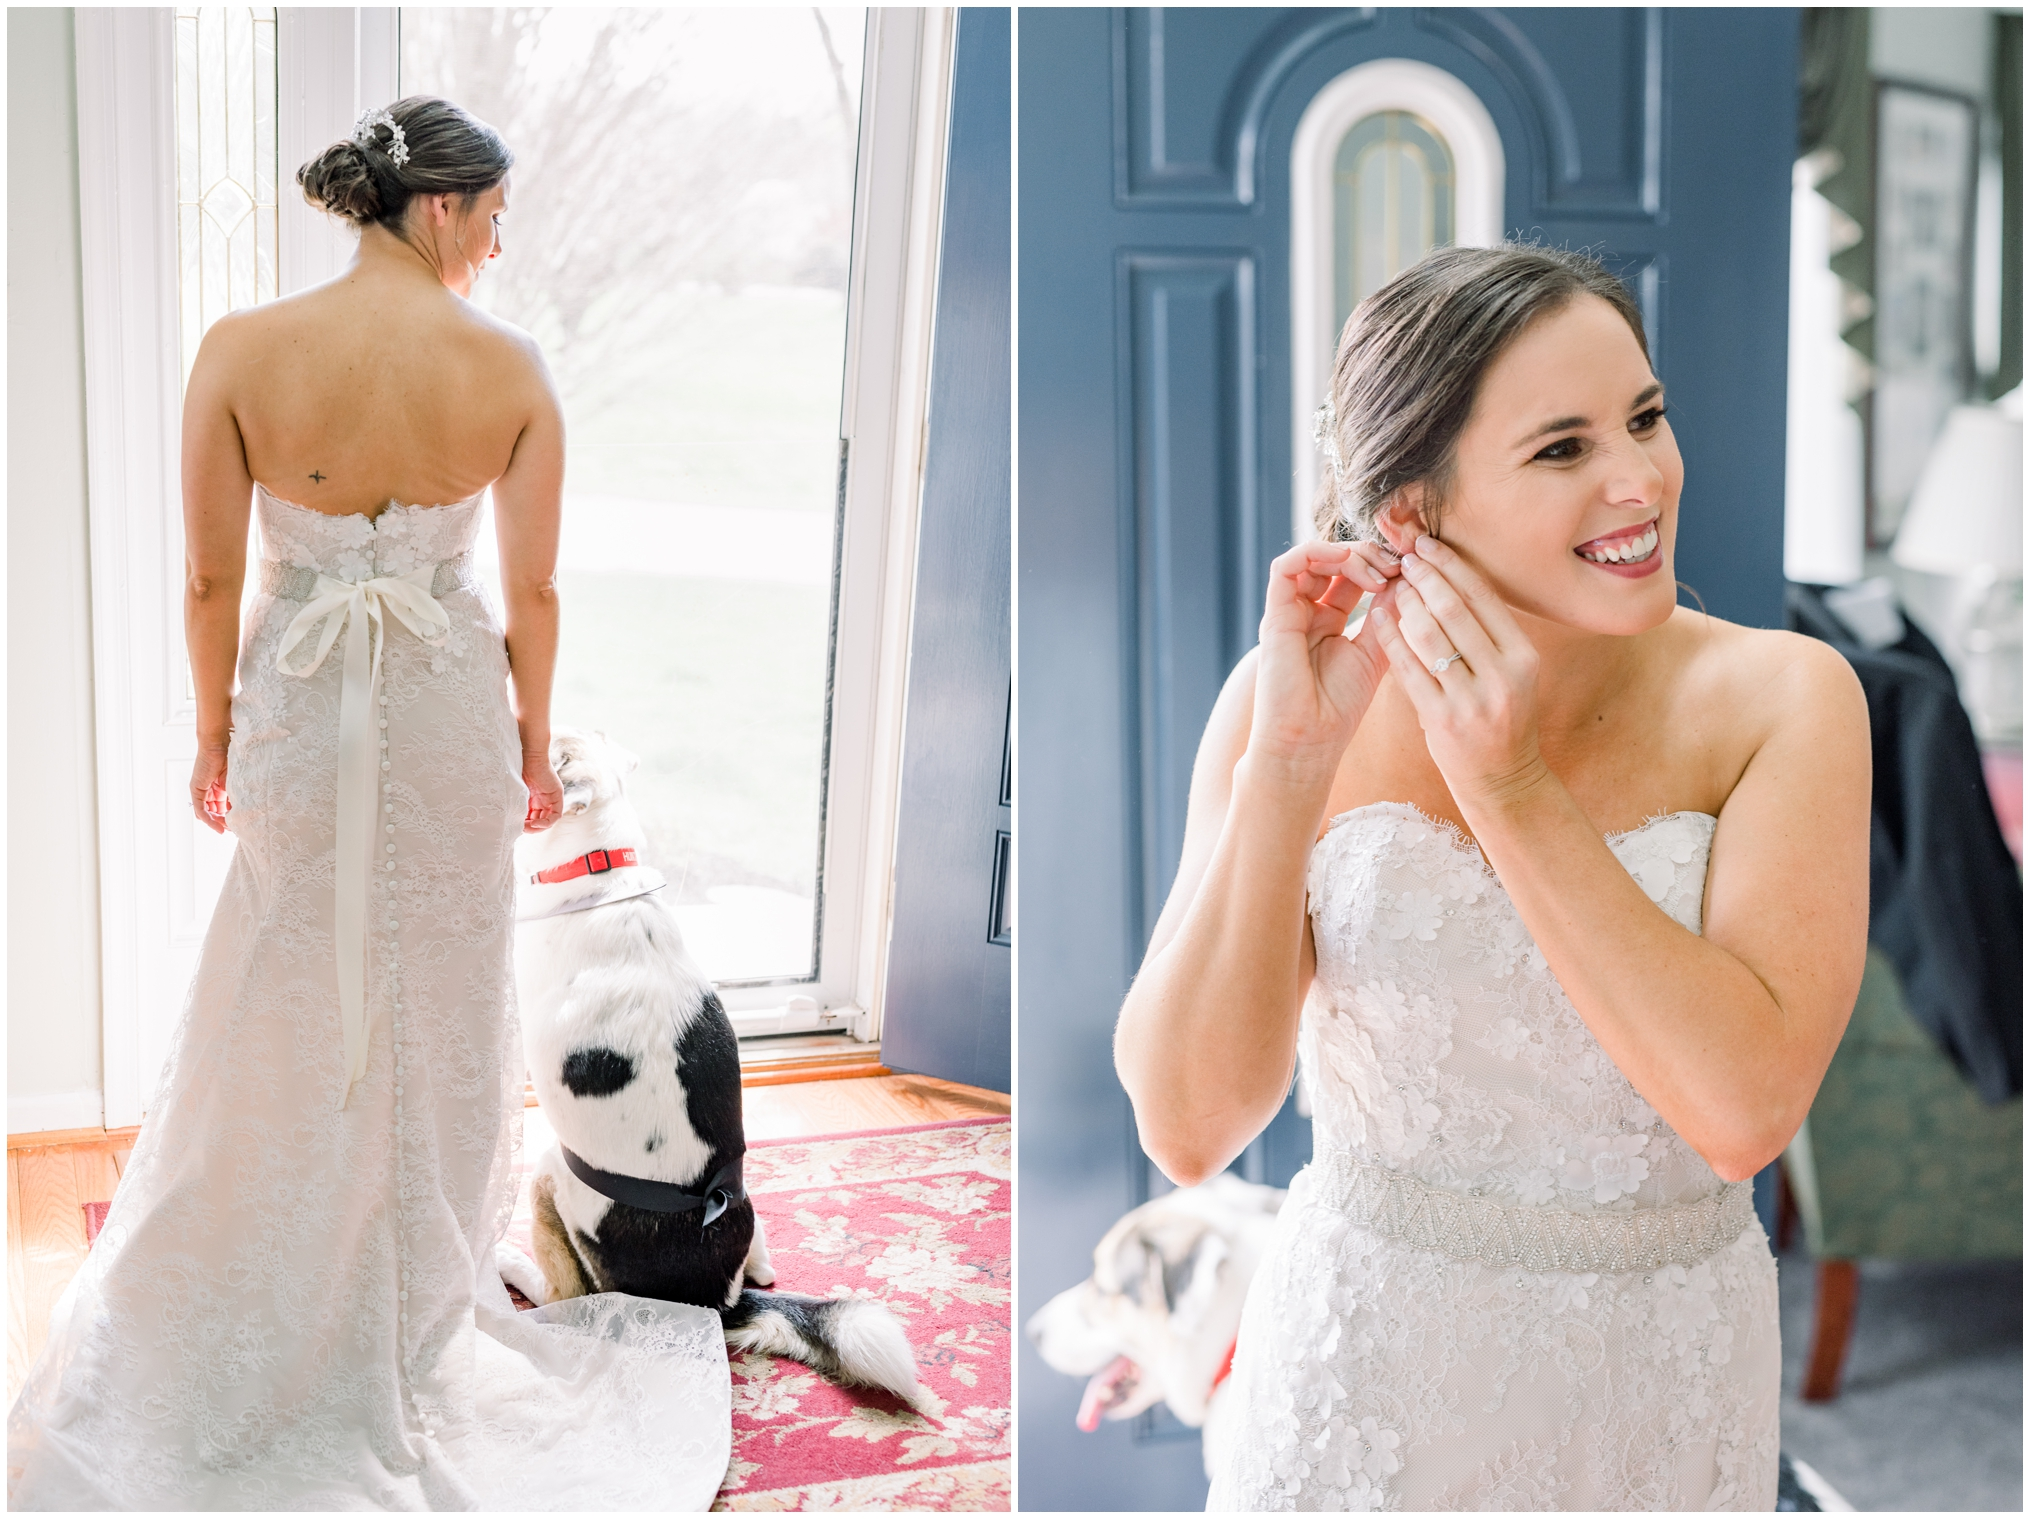 Krista Brackin Photography | April Wedding at The Carriage House at Rockwood Park_0016.jpg